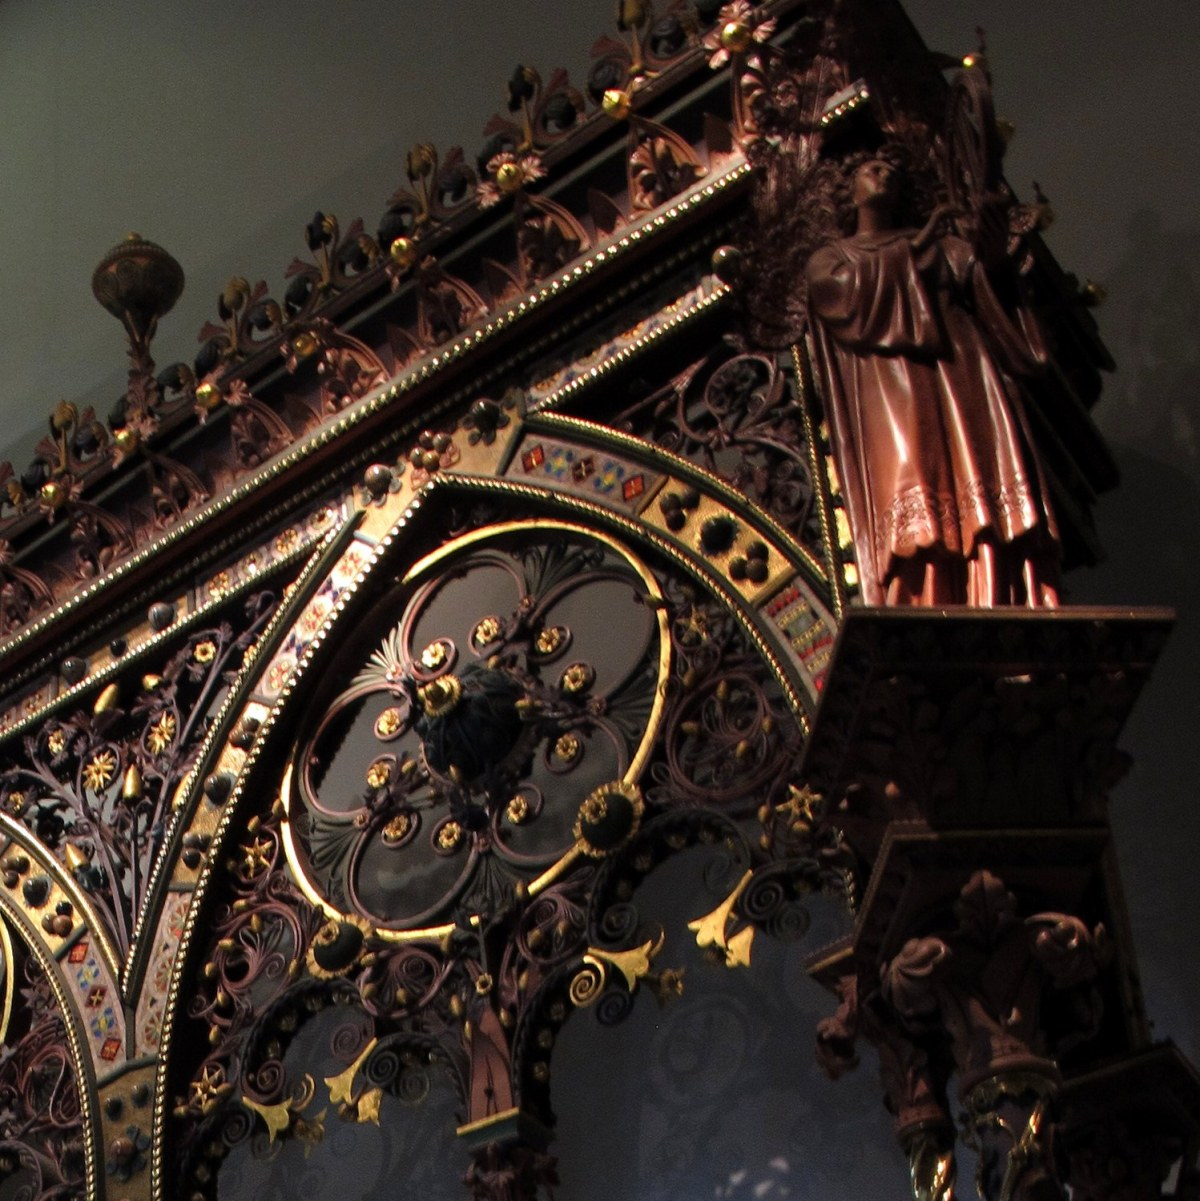 The Victoria and Albert Museum Part 3: InternationalExhibitions